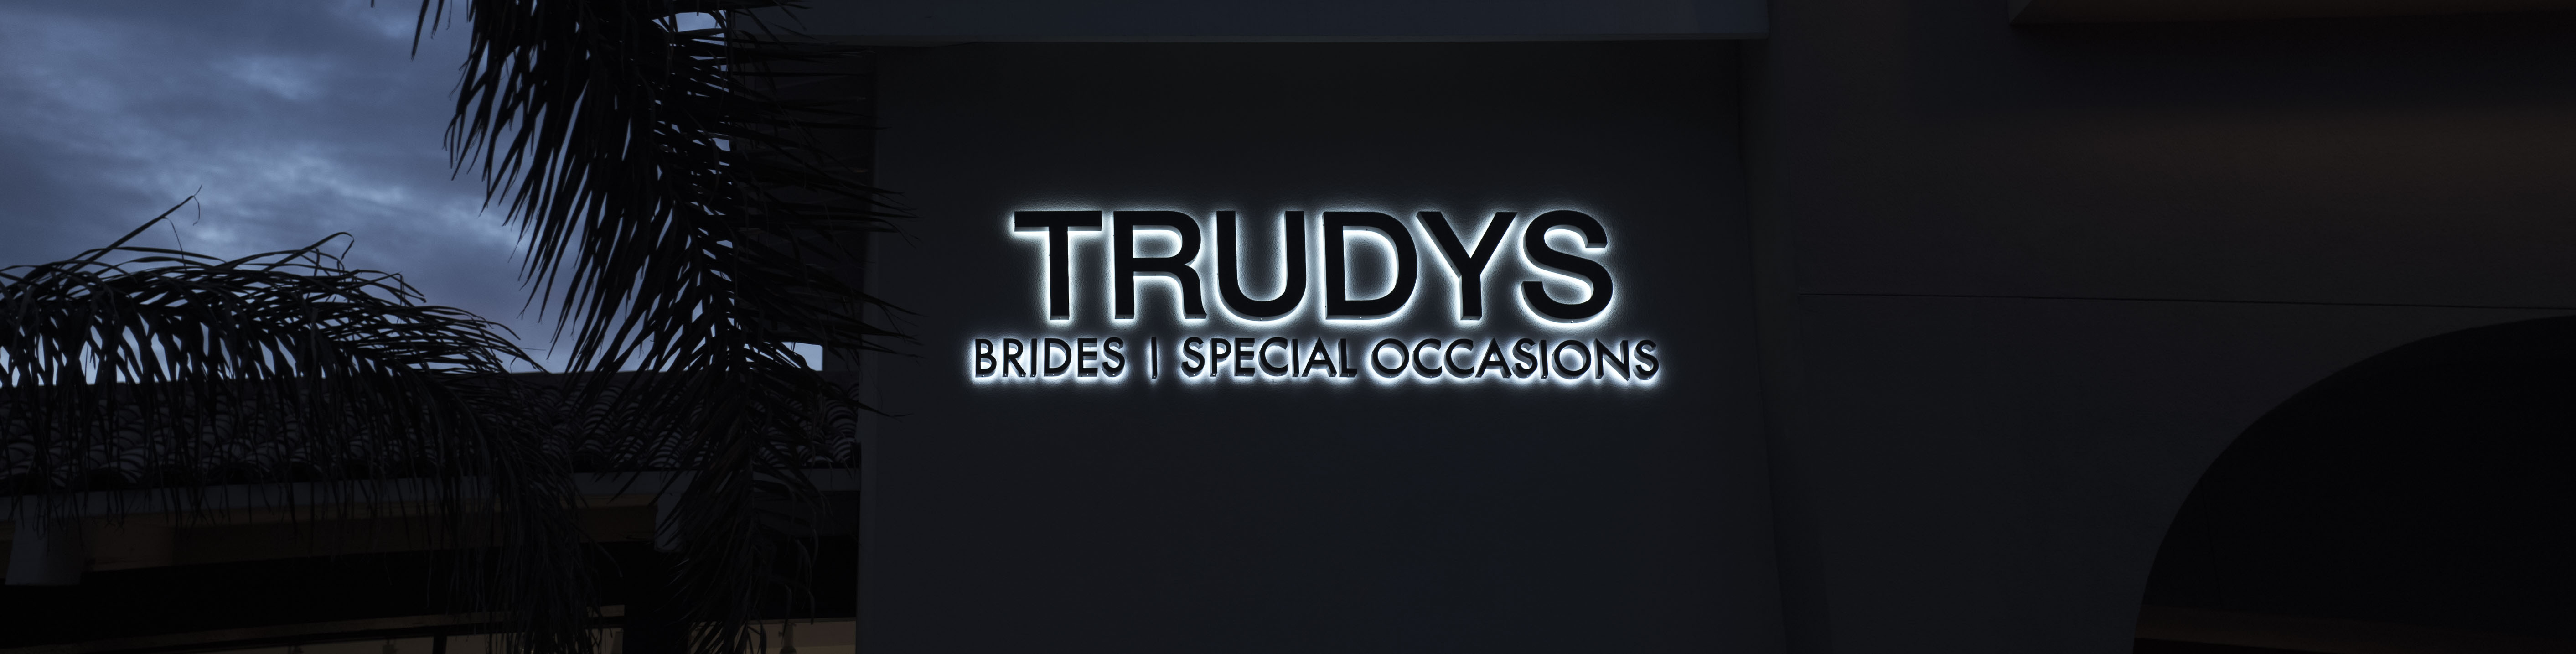 Trudys sign